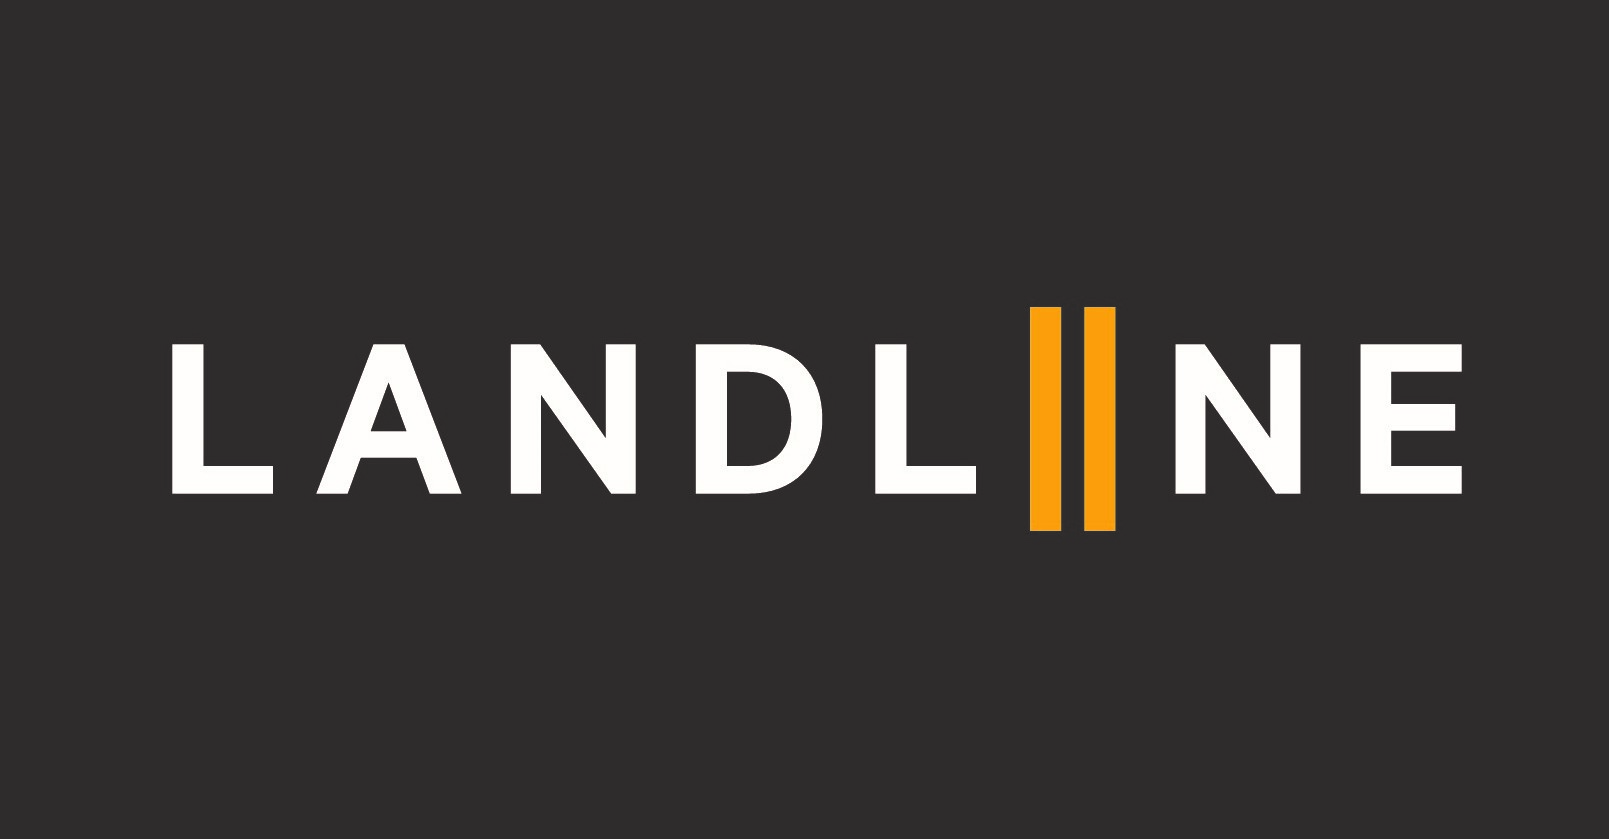 The Landline Company Help Center home page